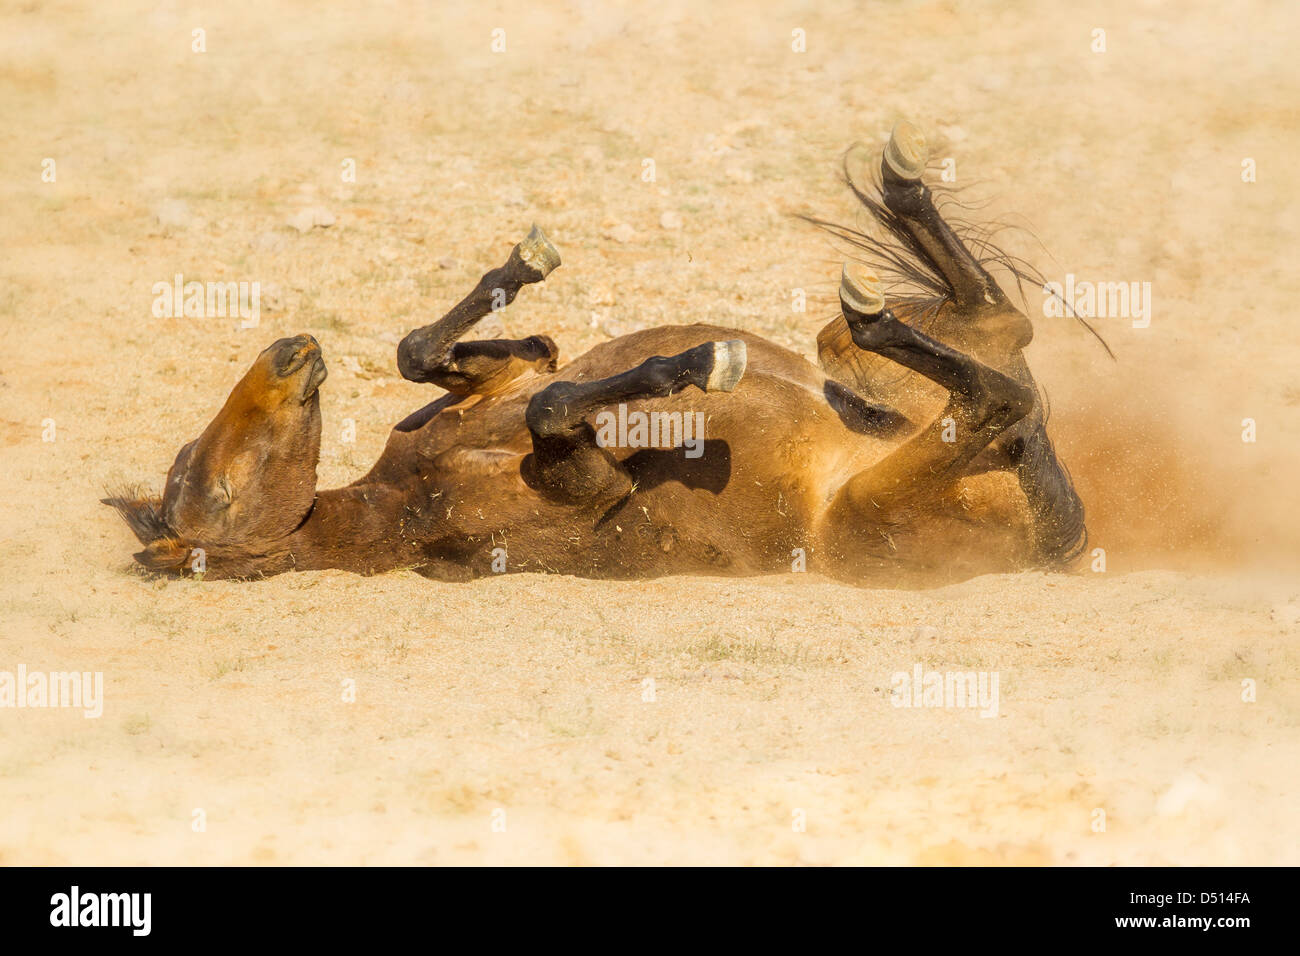 Feral horse rolling in the dust of the Namib desert, southern Namibia. - Stock Image